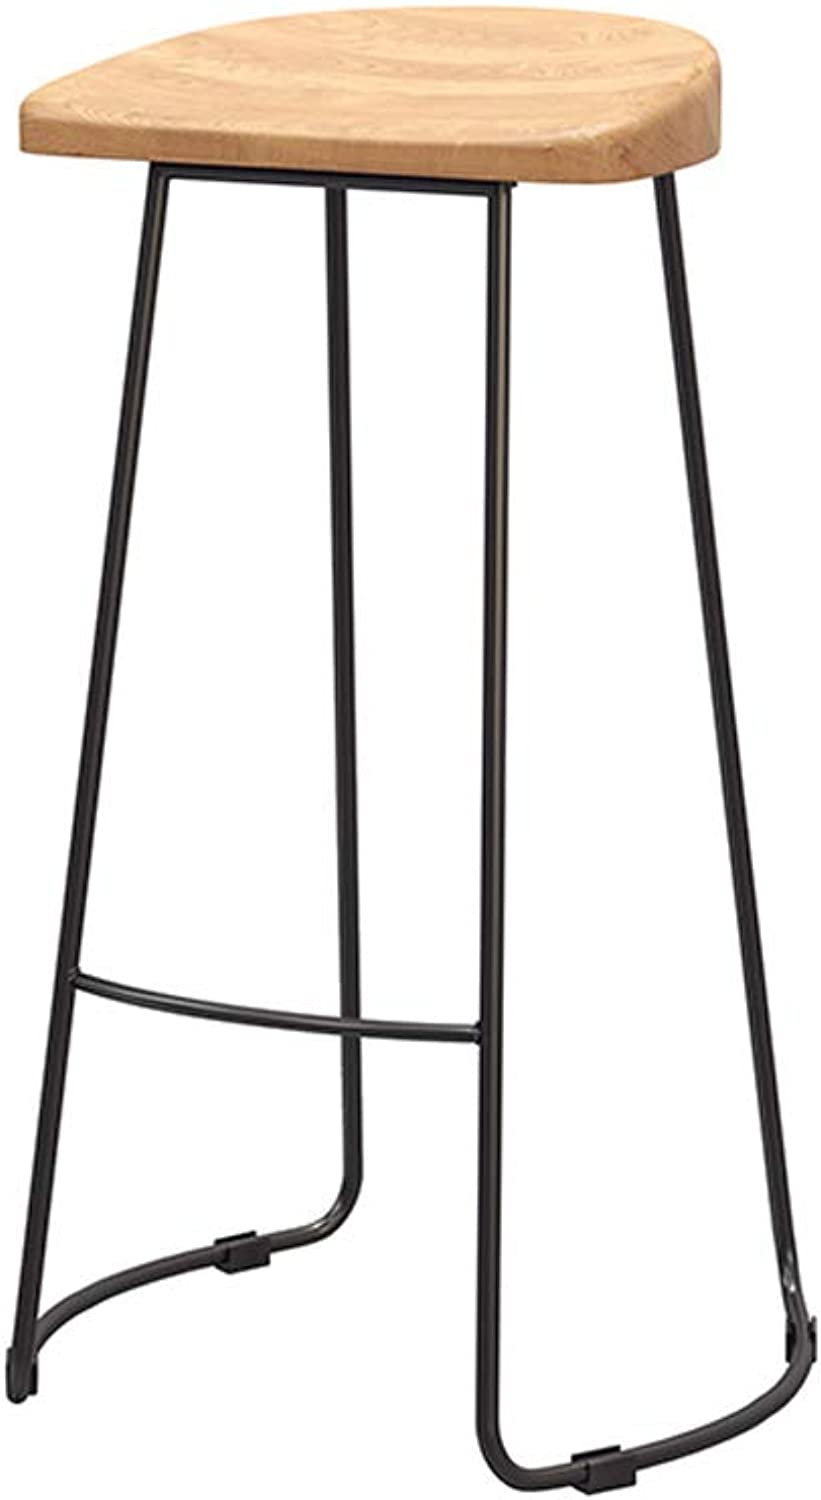 Xiao Jian Nordic Solid Wood Bar Stool High Stools Home Bar Chair Beauty Stool Front High Chair Bar Chair (color   B)